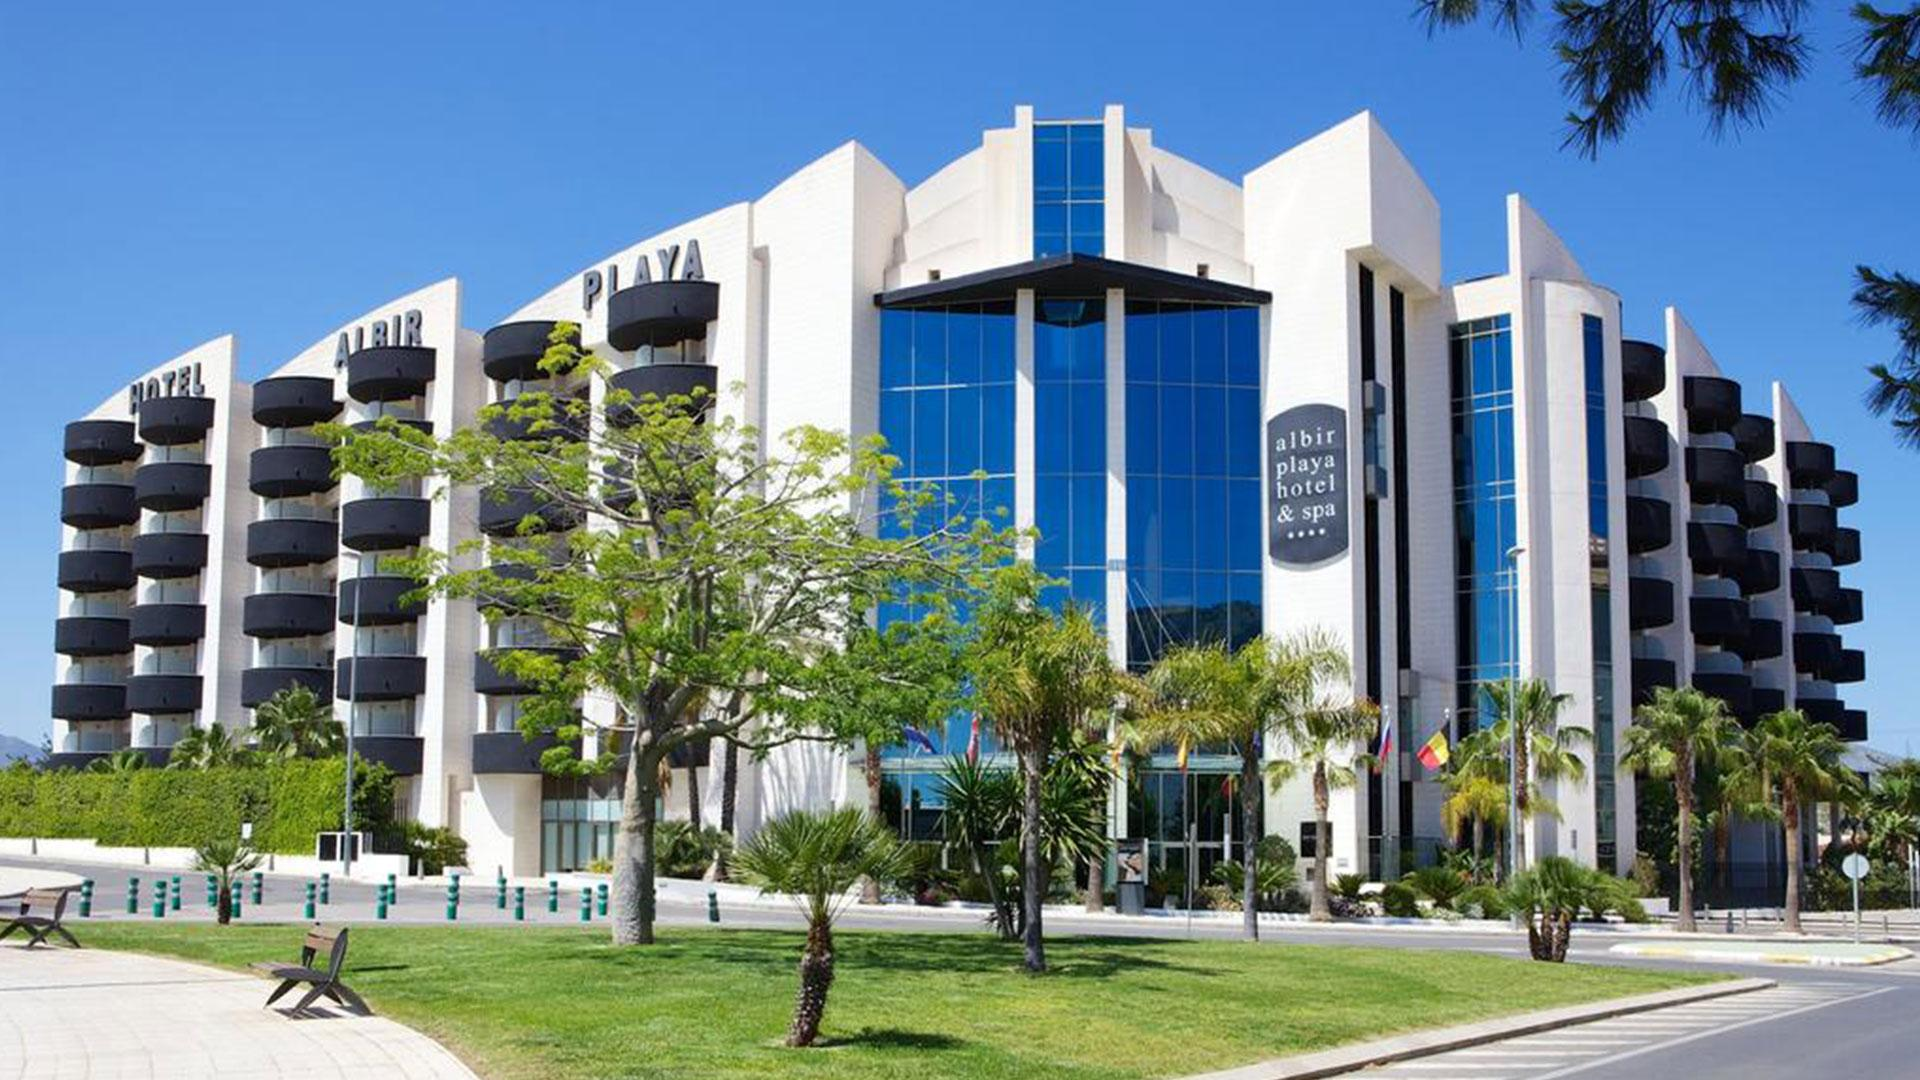 Испания, Альбир, ALBIR PLAYA HOTEL AND SPA 4* ✈28.05